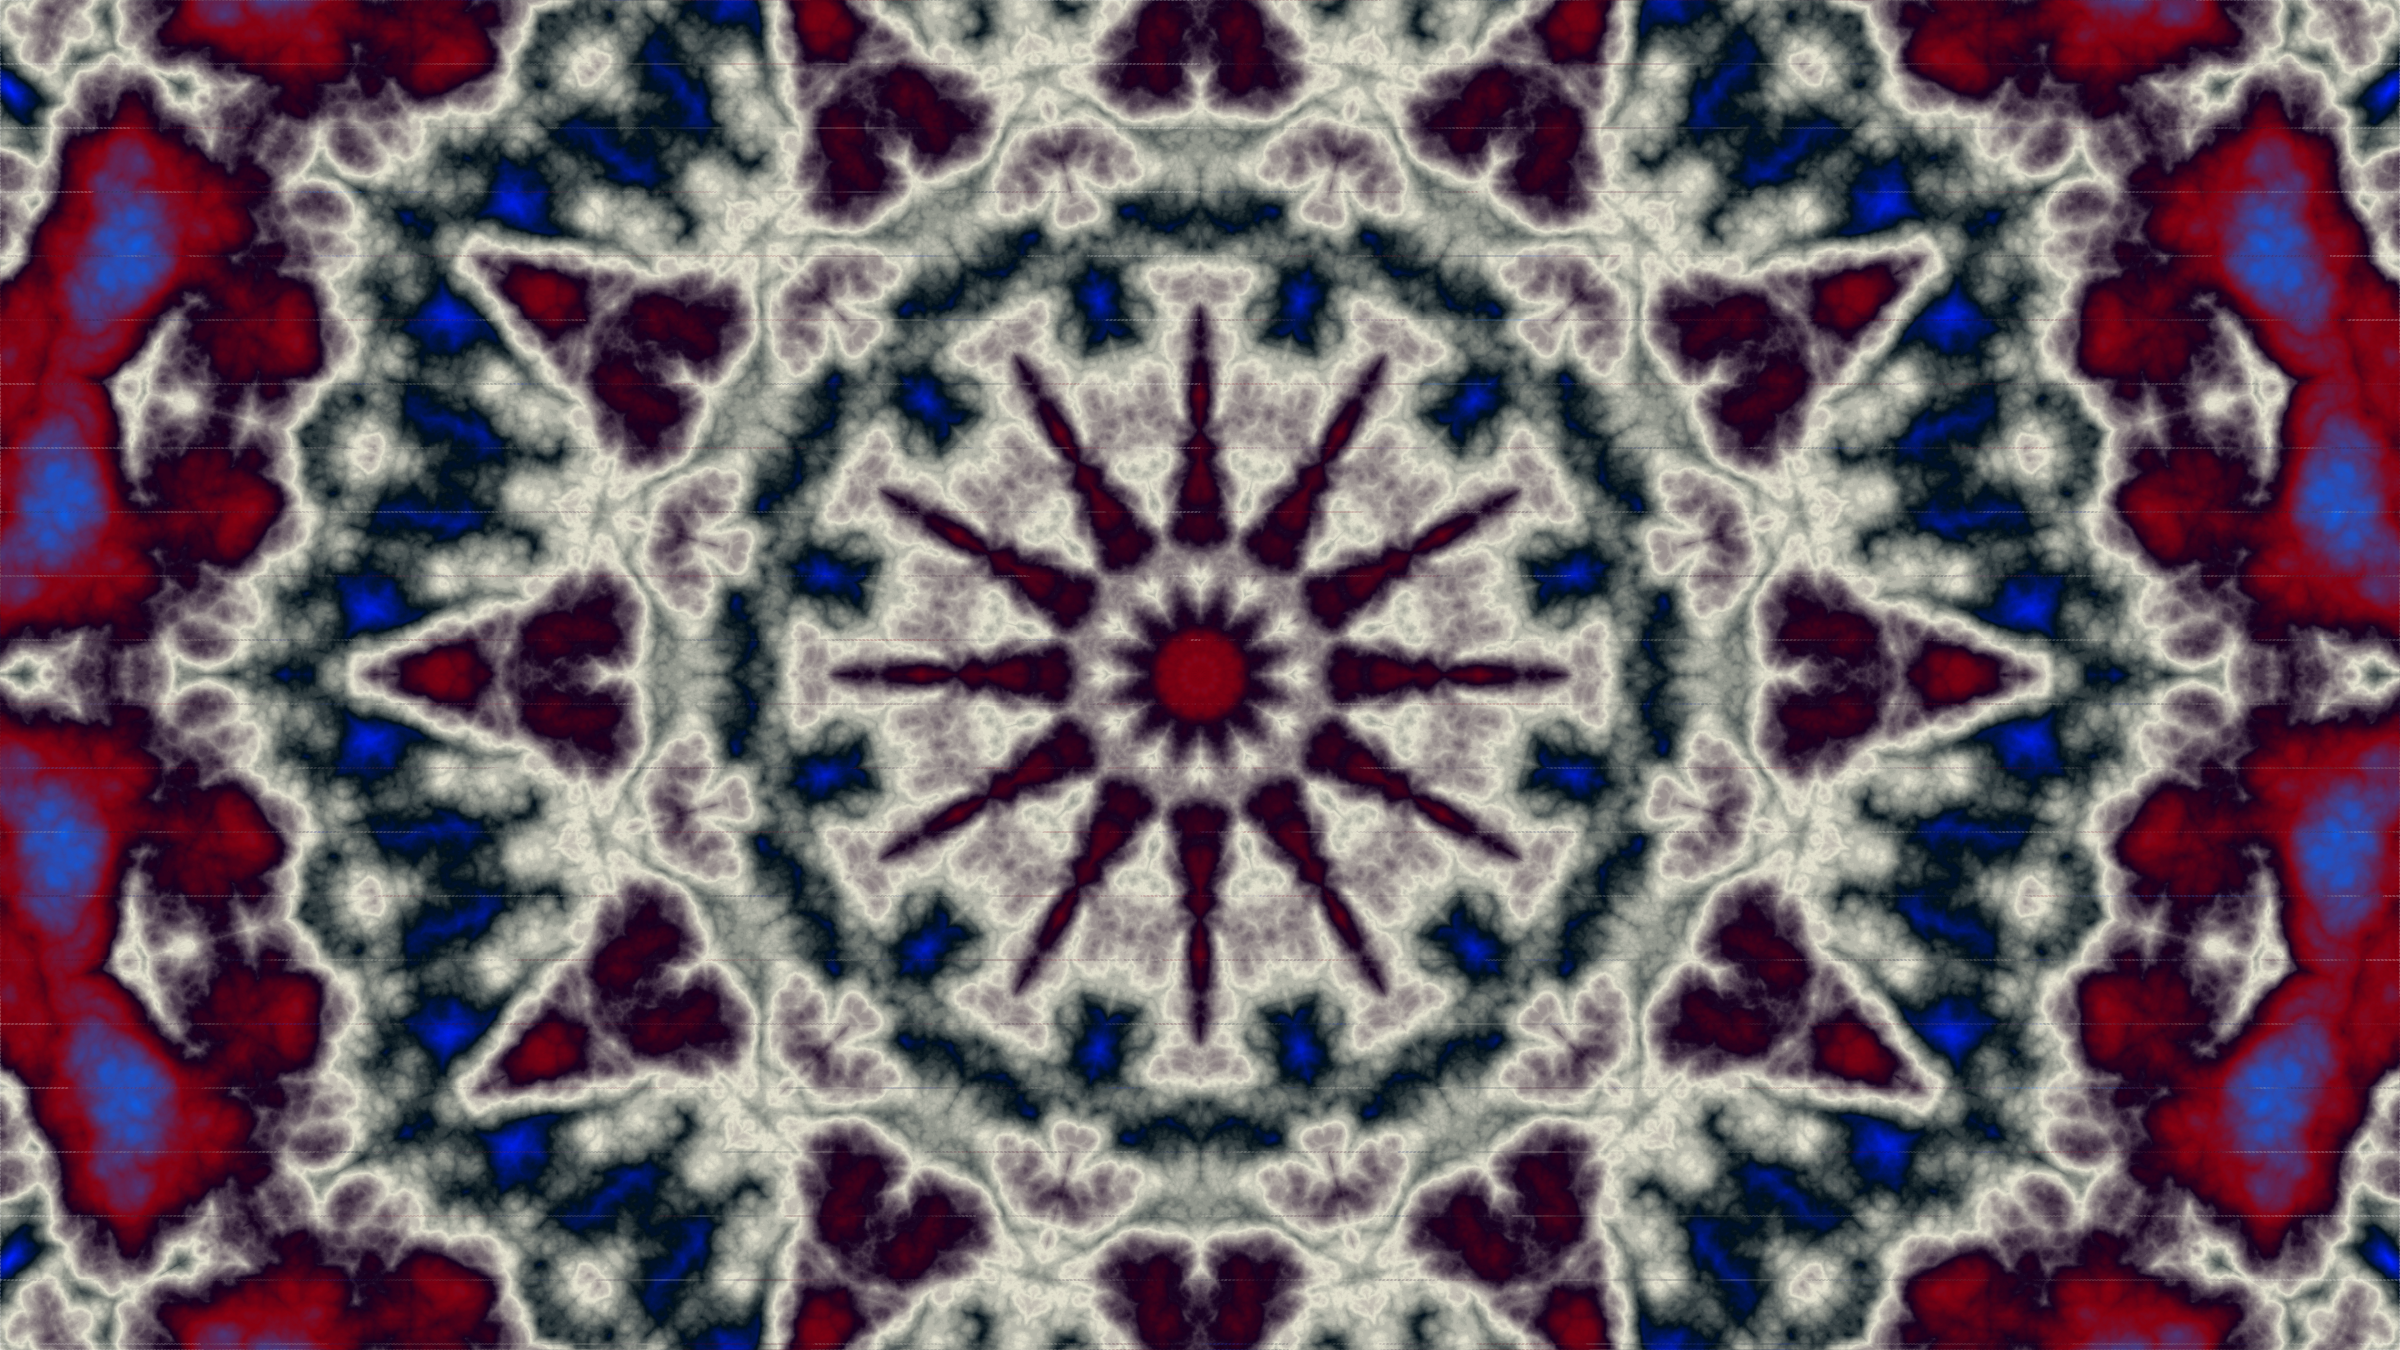 kaleidoscope wallpaper 2 by Lazur URH